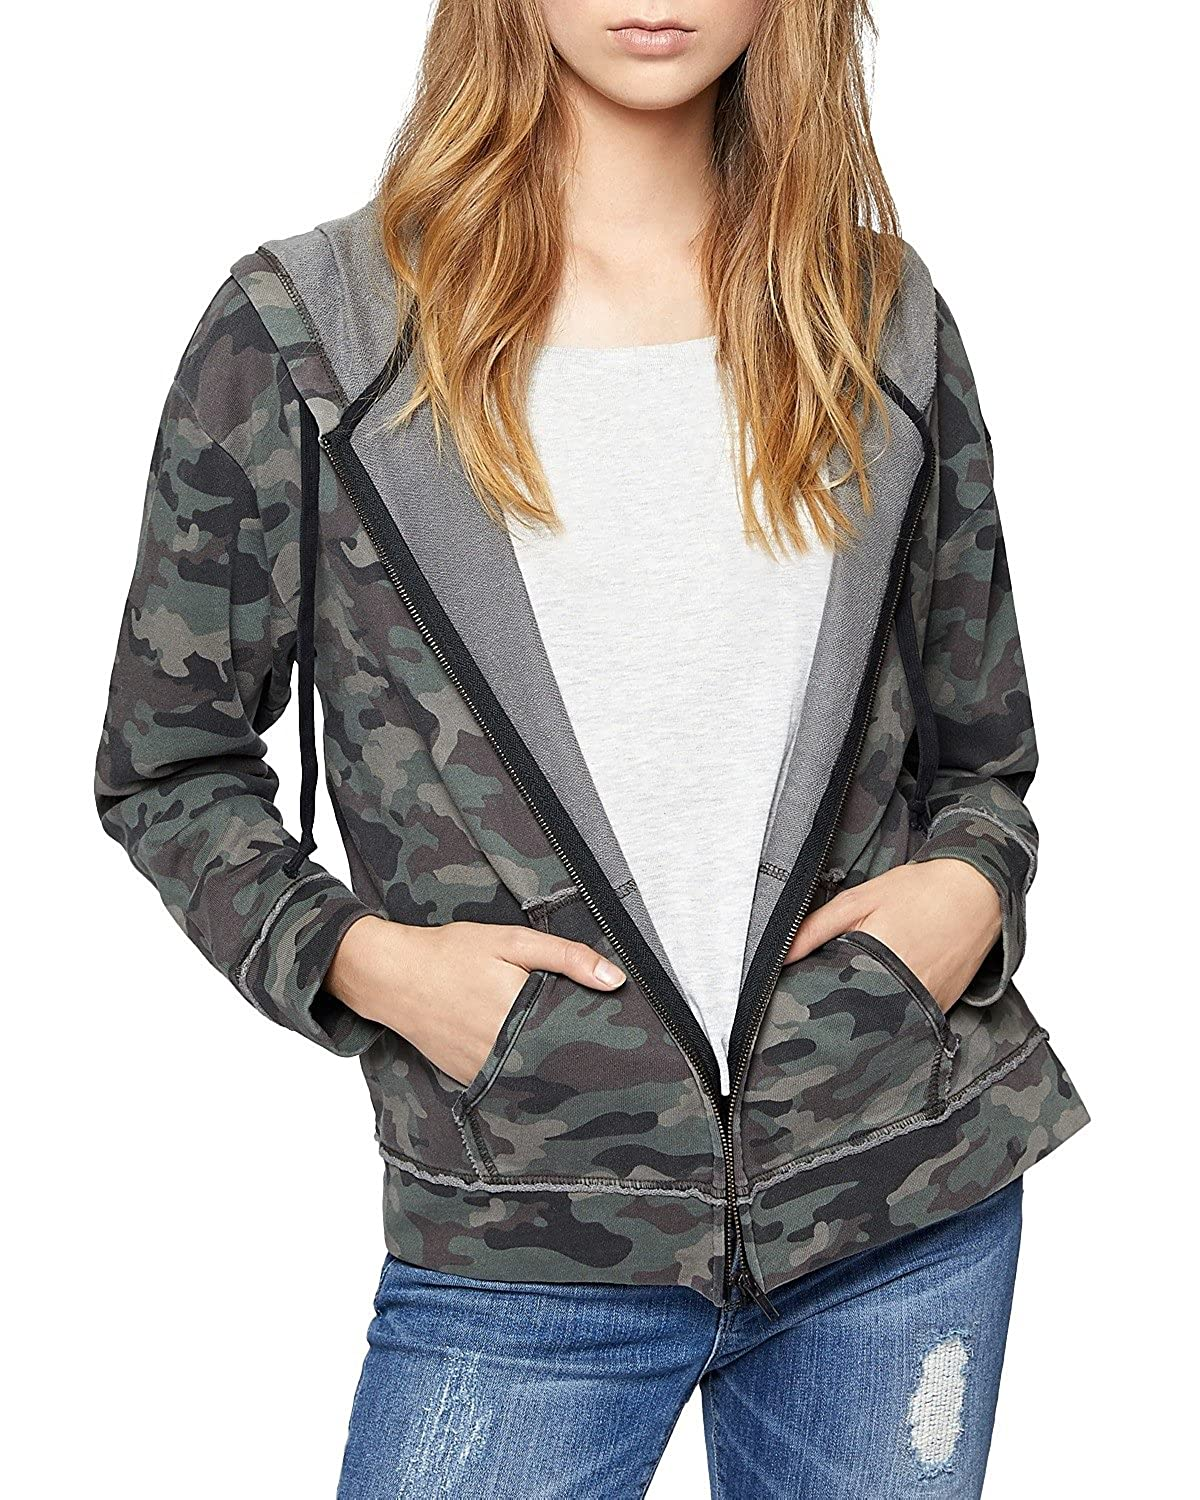 37ff250b2 70%OFF Sanctuary Womens Peace Trooper Hoodie Sweatshirt